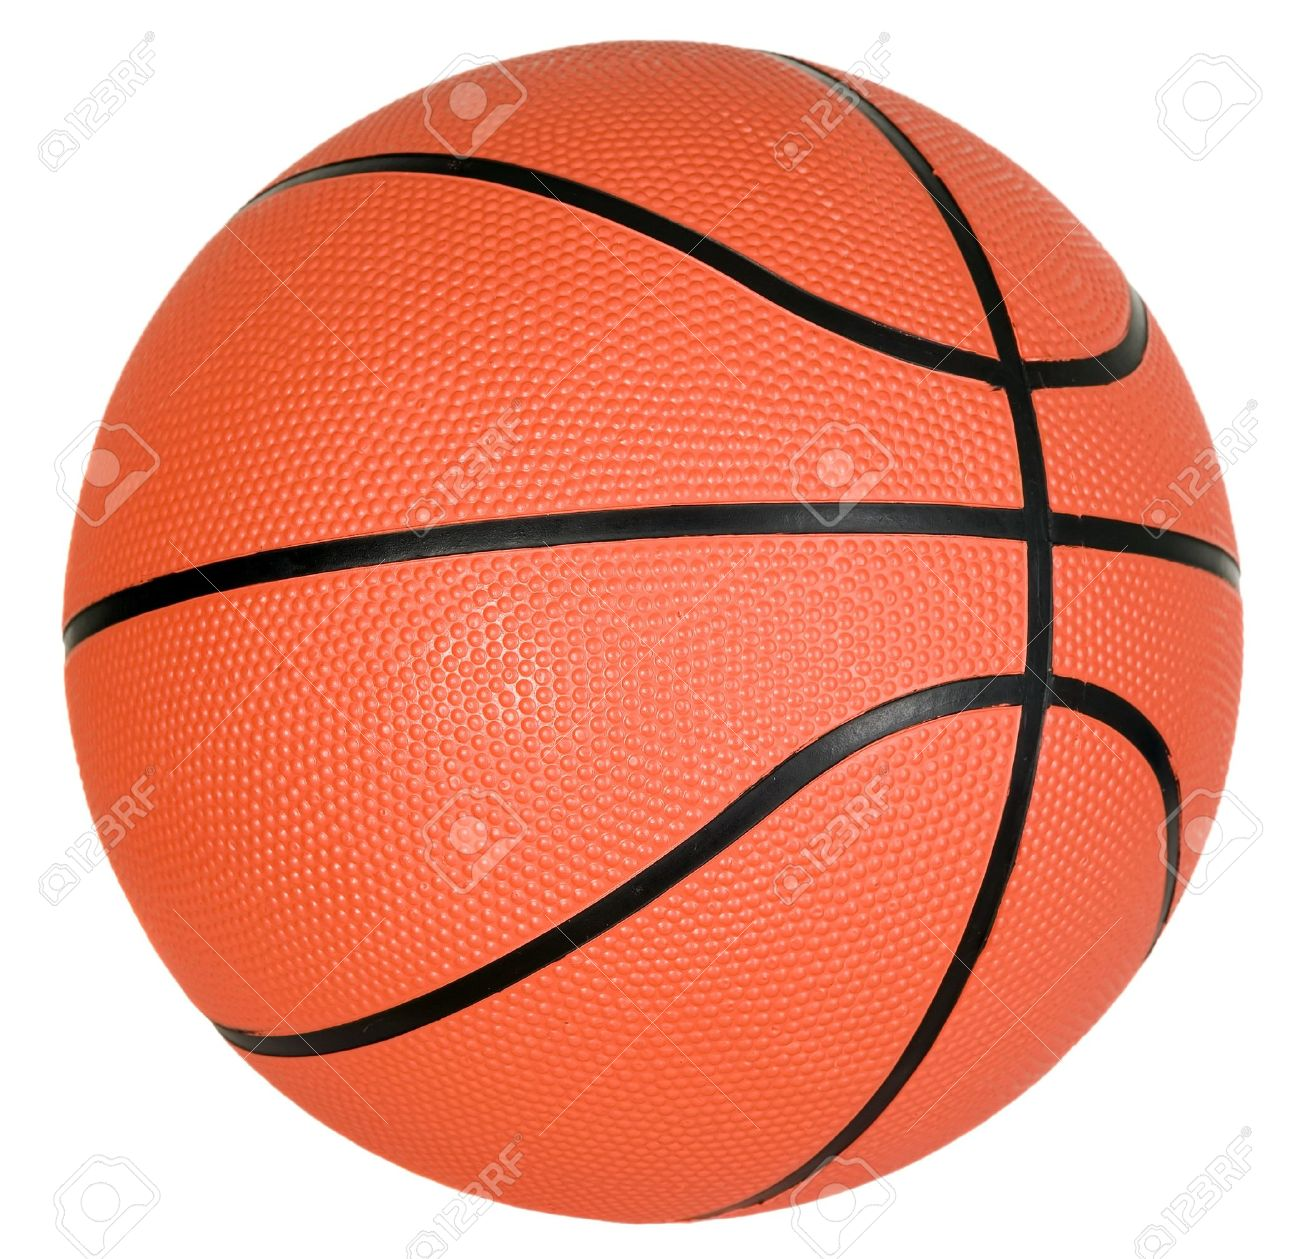 There is orange ball with black strips for basketball game Stock Photo - 7846882